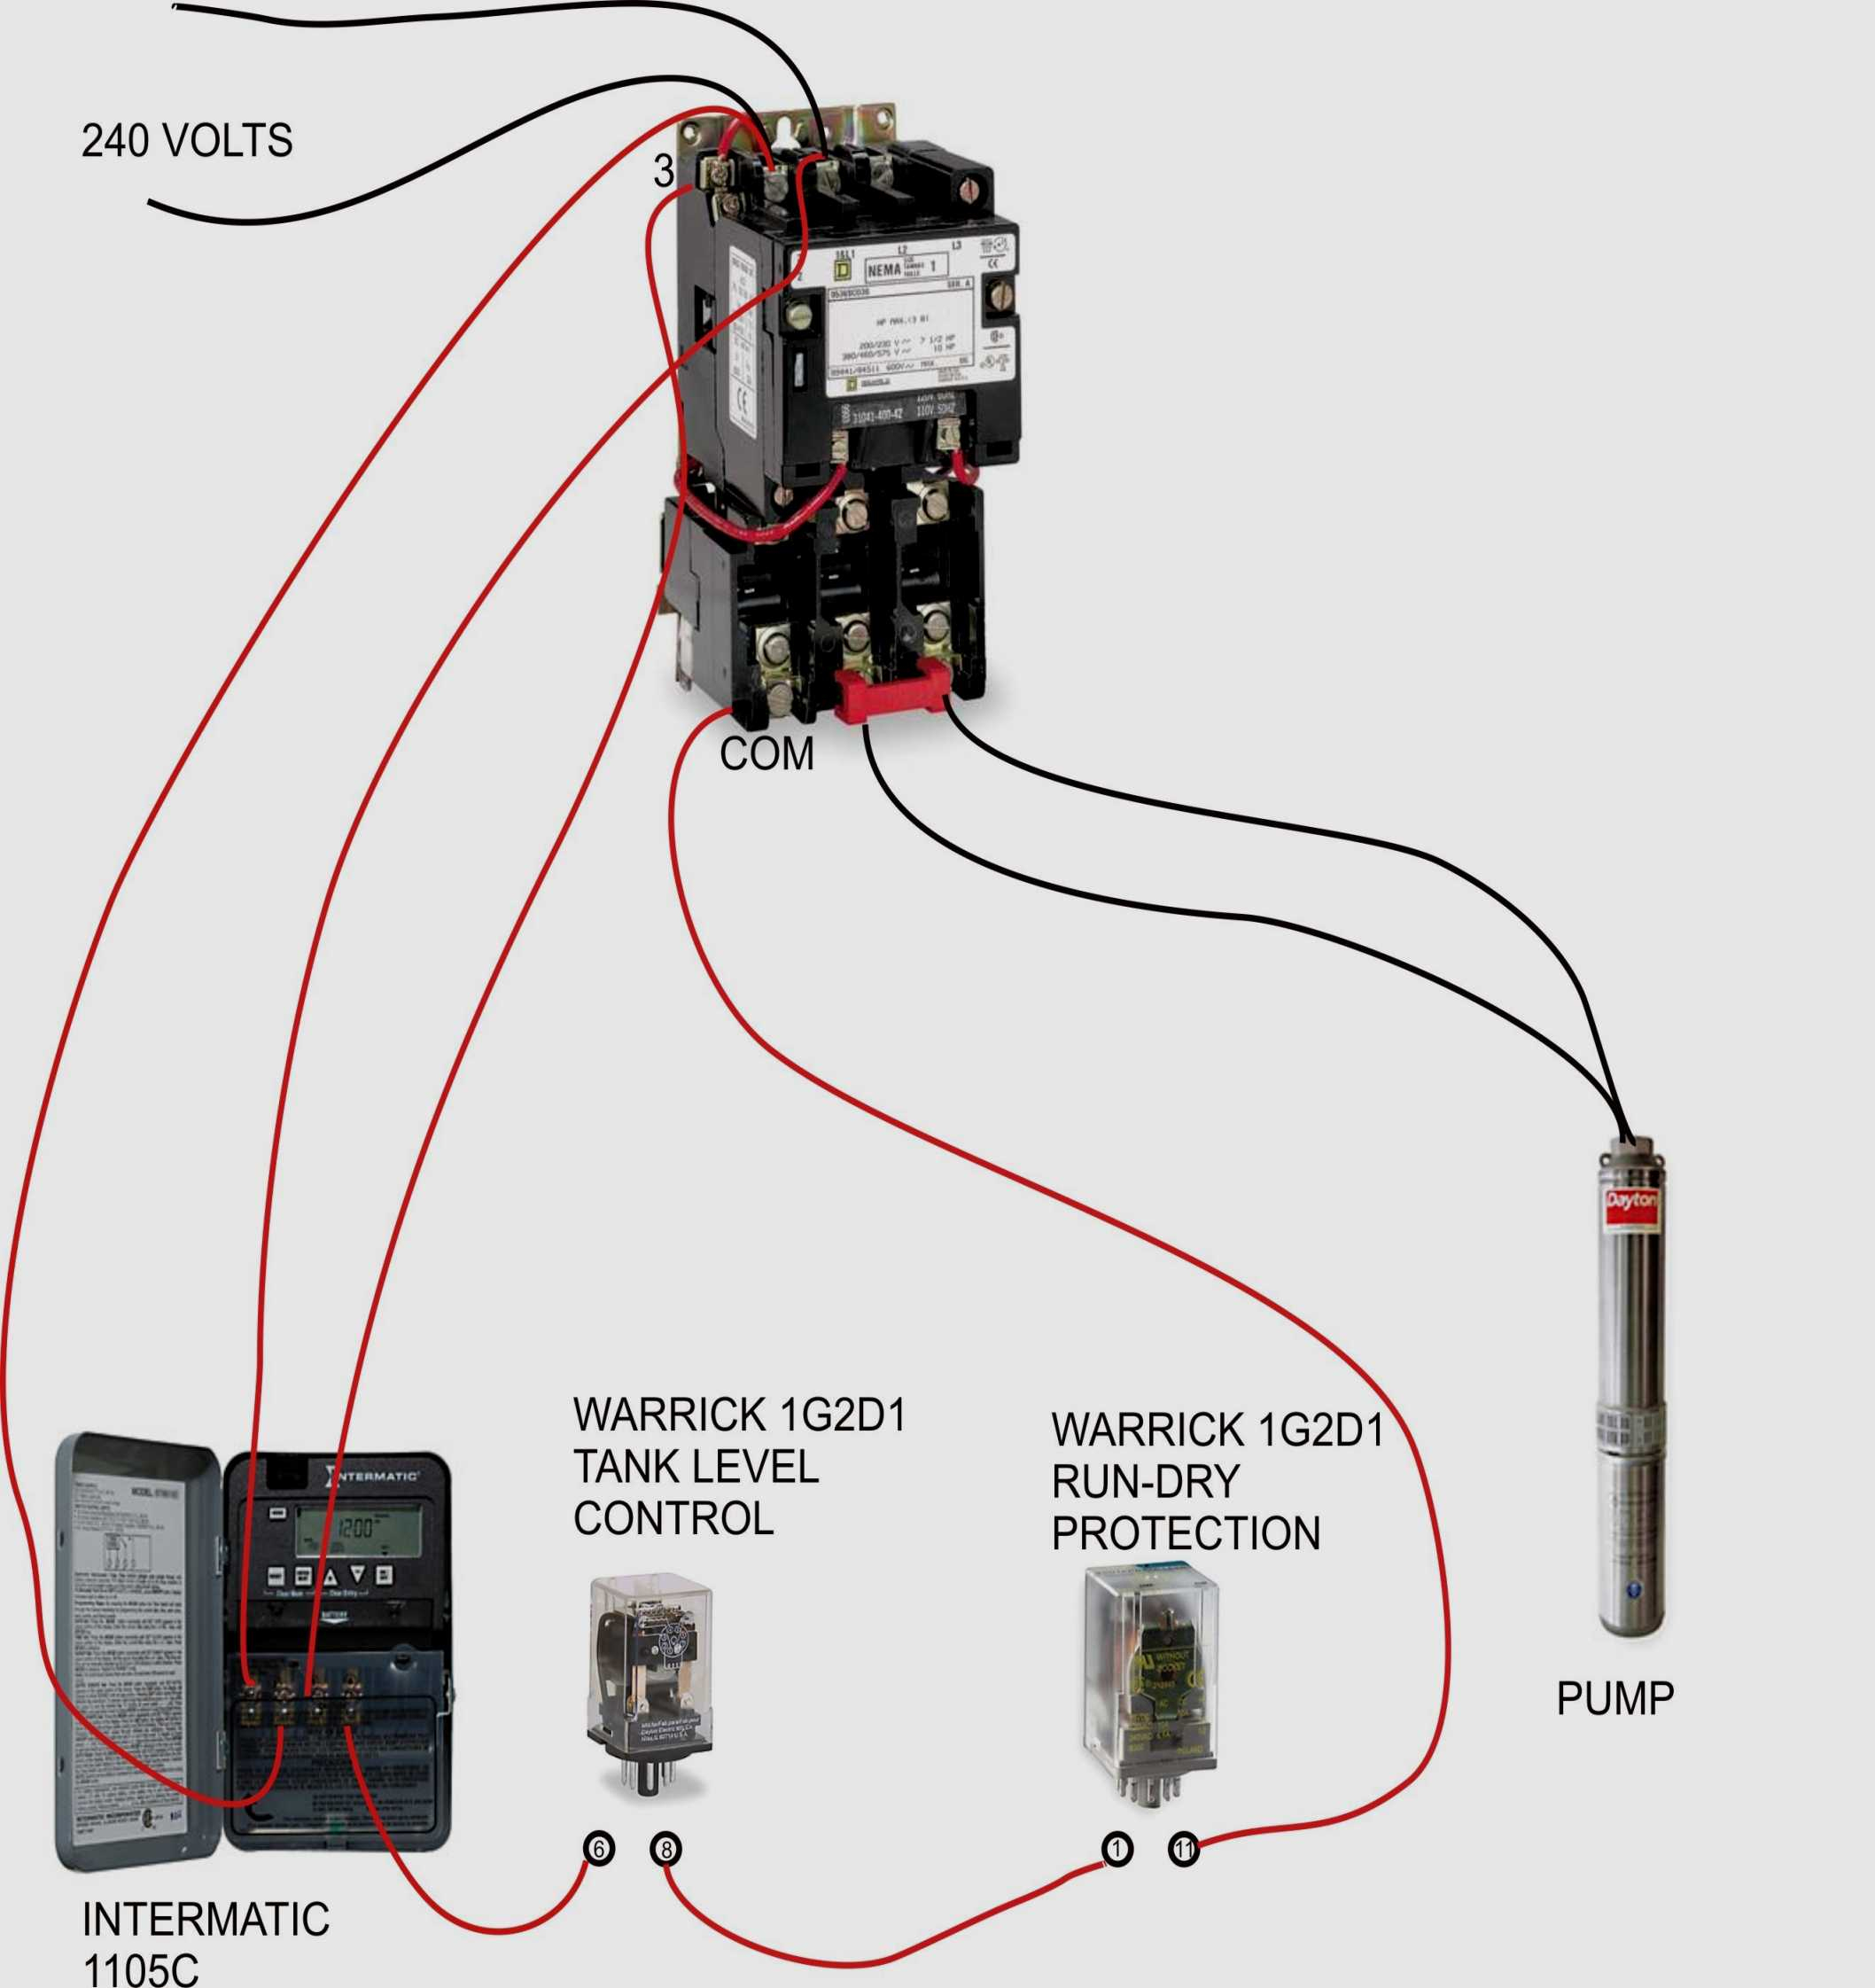 Square D Lighting Contactor Wiring Diagram | Wiring Diagram - Square D Motor Starter Wiring Diagram